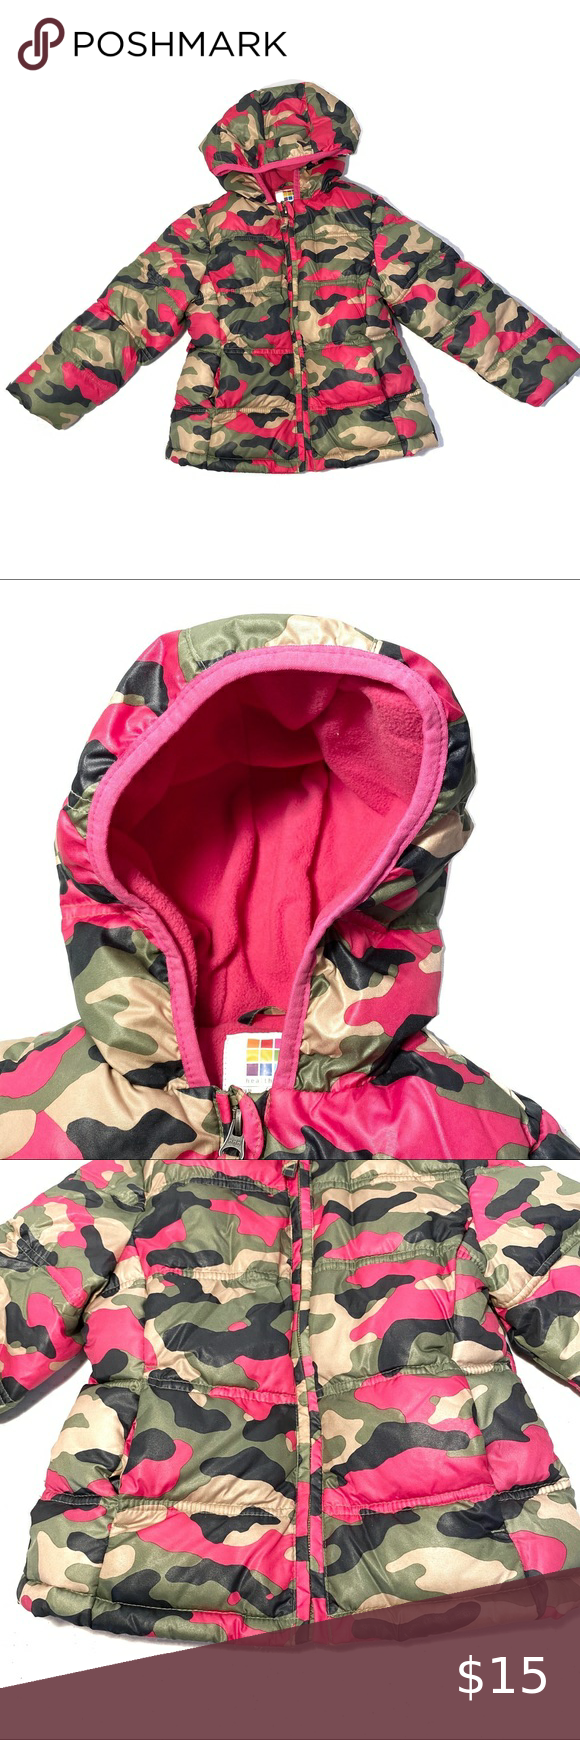 Healthtex Puffer Jacket 4t Camouflage Pink Pink Camouflage Camouflage Puffer Jackets [ 1740 x 580 Pixel ]